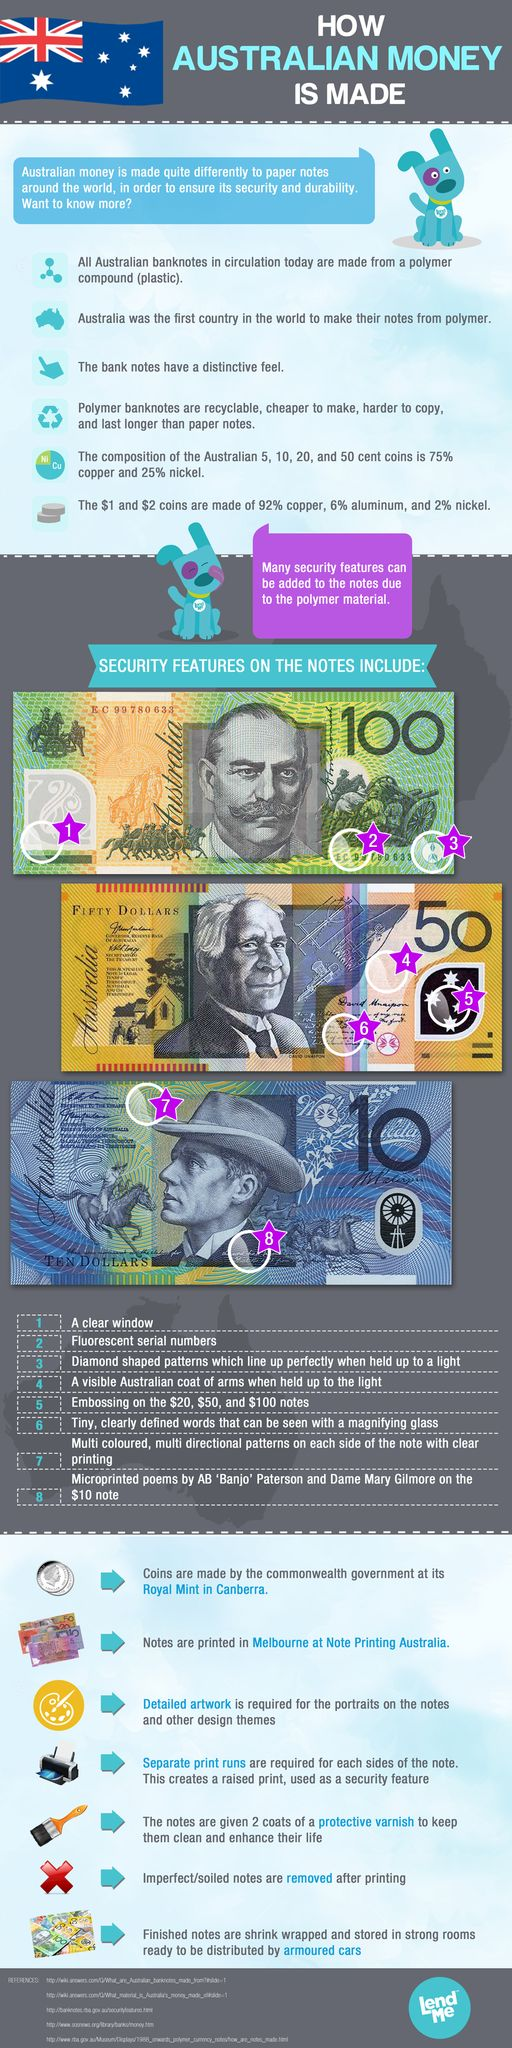 How Australian Money is Made [Infographic]